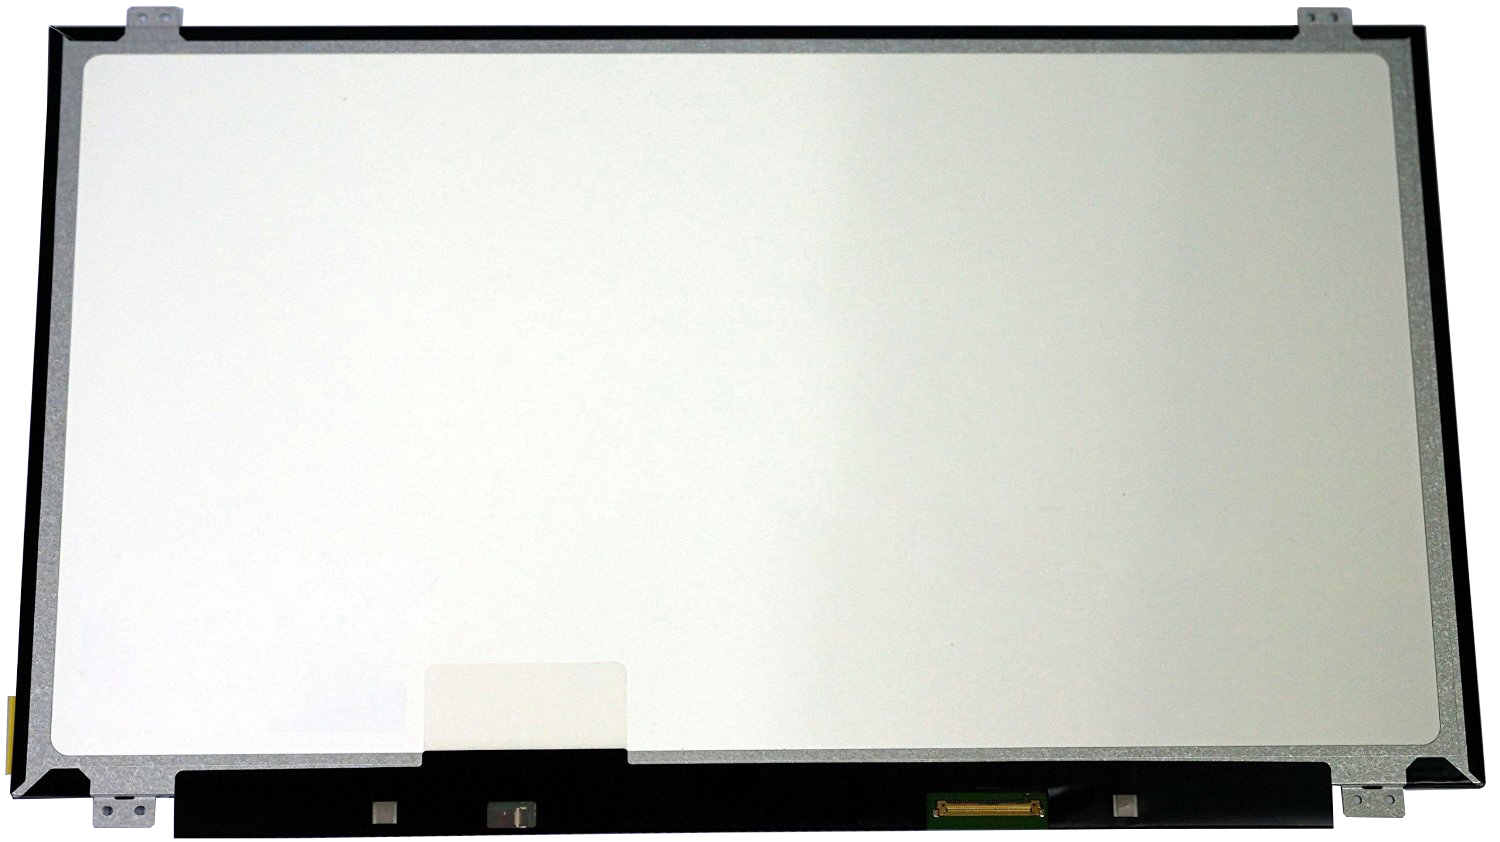 QuYing Laptop LCD Screen for Acer Aspire ETHOS 5951G TIMELINE 5745-7531 Series (15.6 inch 1366x768 40pin N) quying laptop lcd screen for acer extensa 5235 as5551 series 15 6 inch 1366x768 40pin tk